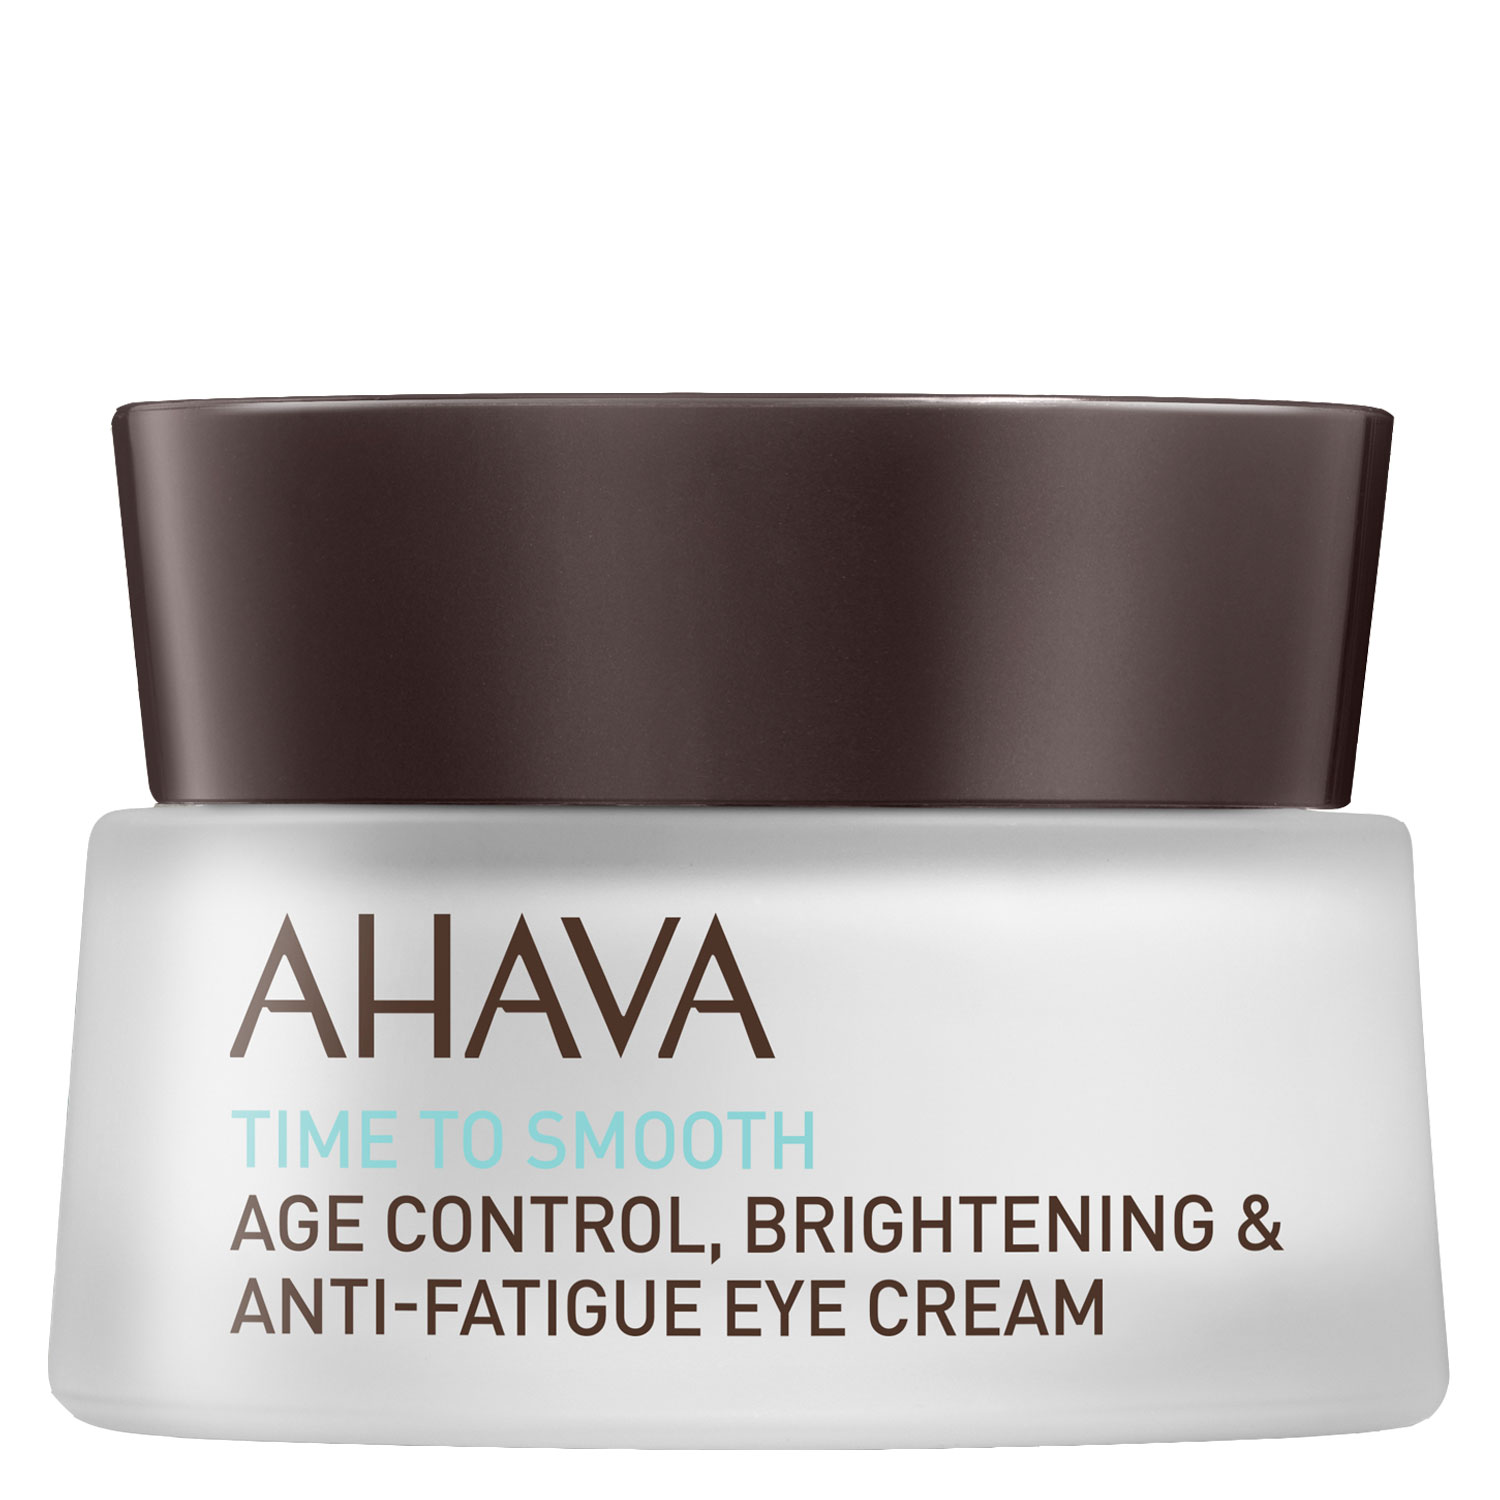 Time To Smooth - Age Control Brightening & Anti-fatigue Eye Cream